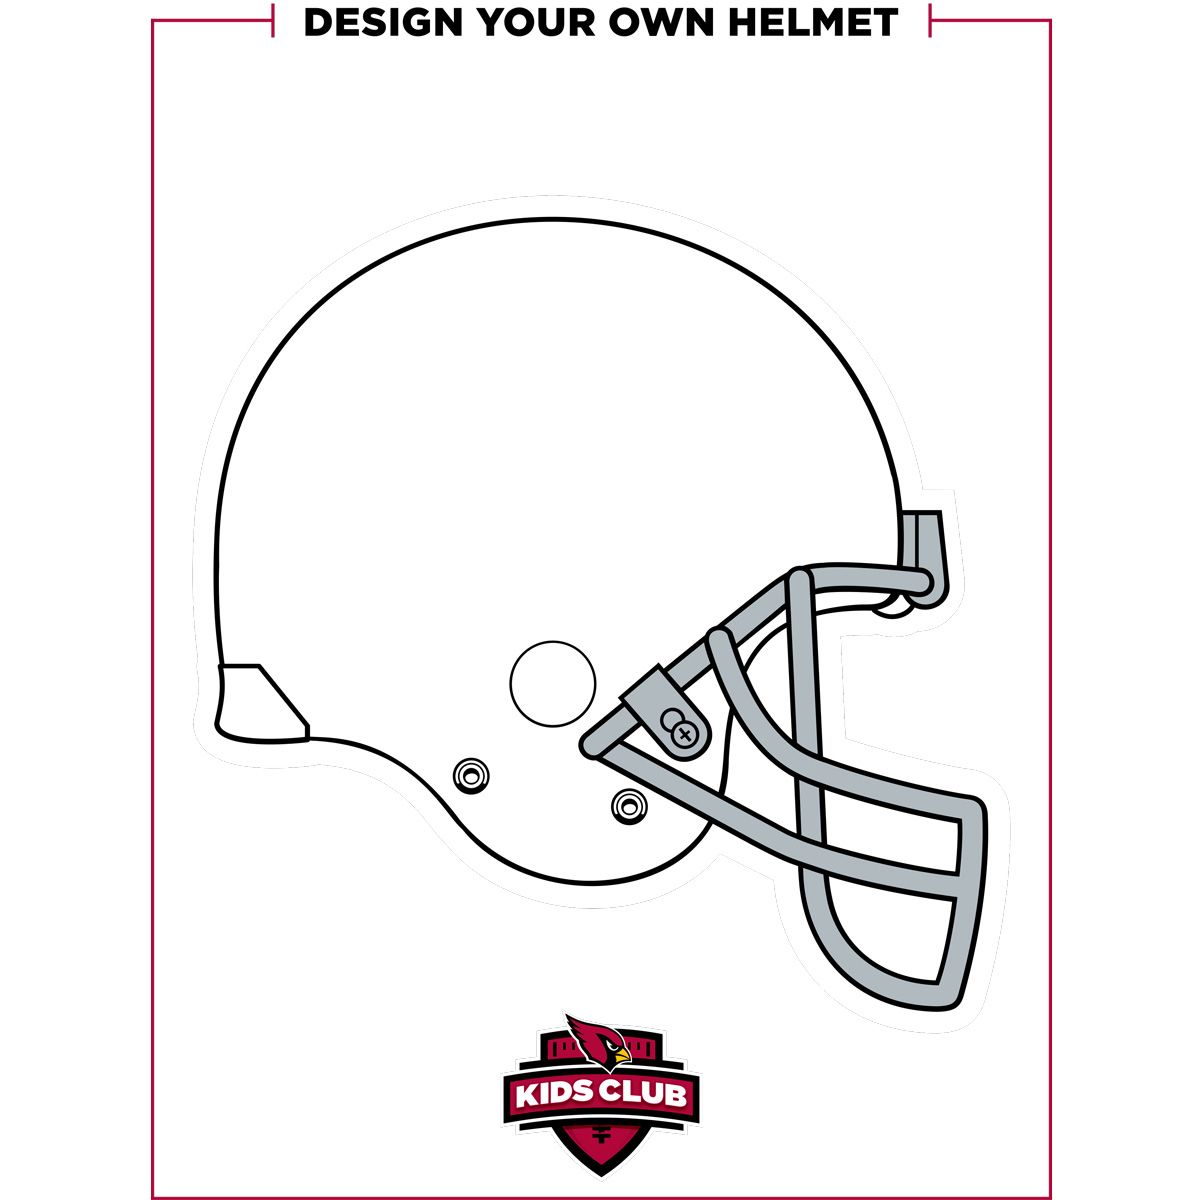 Design Your Own Helmet Kids Club Activity Coloring Book Image